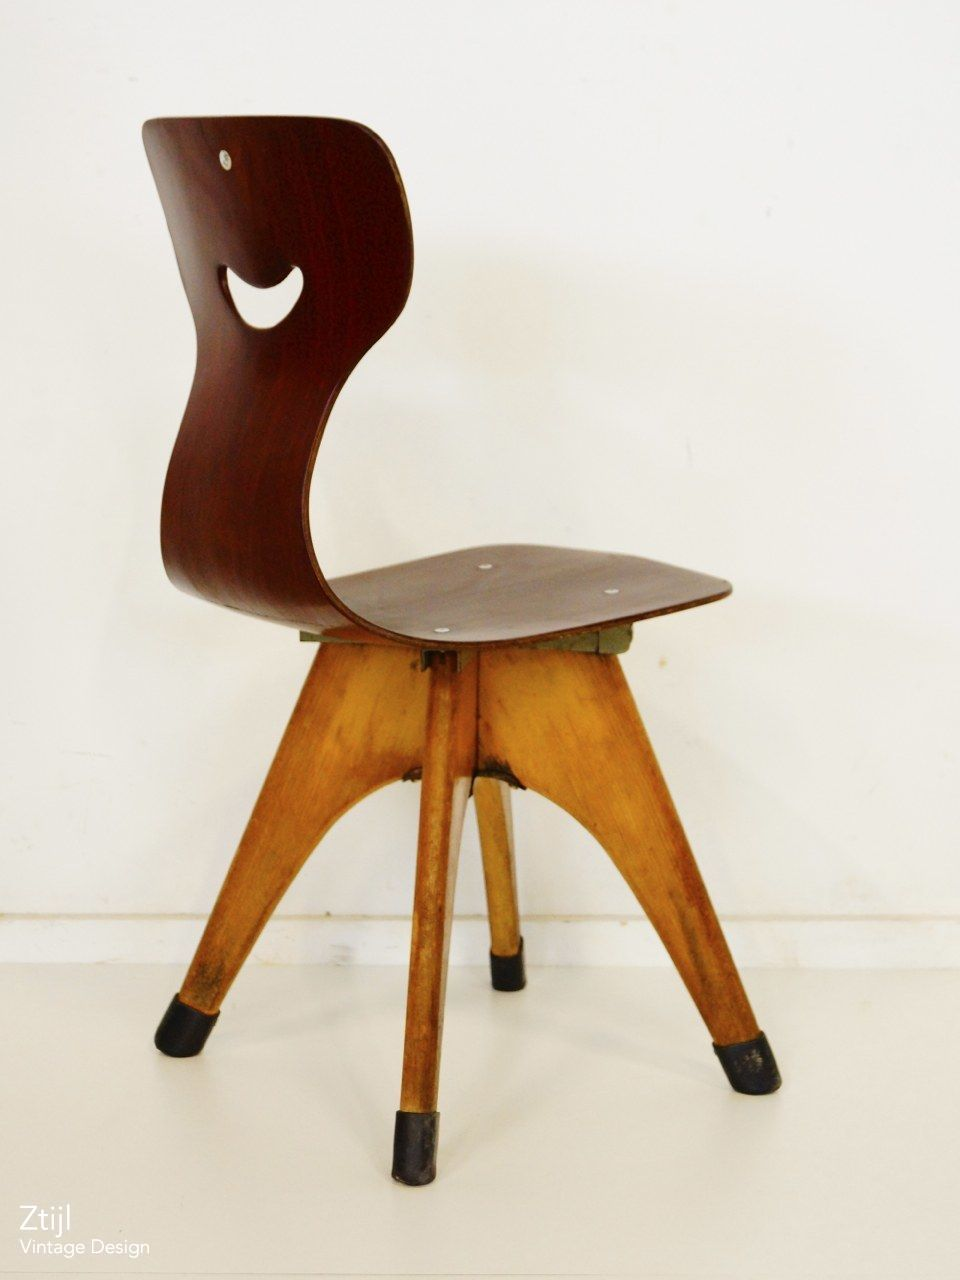 ... Pagholz Childrens Chair, 1950s | Mid Century Design